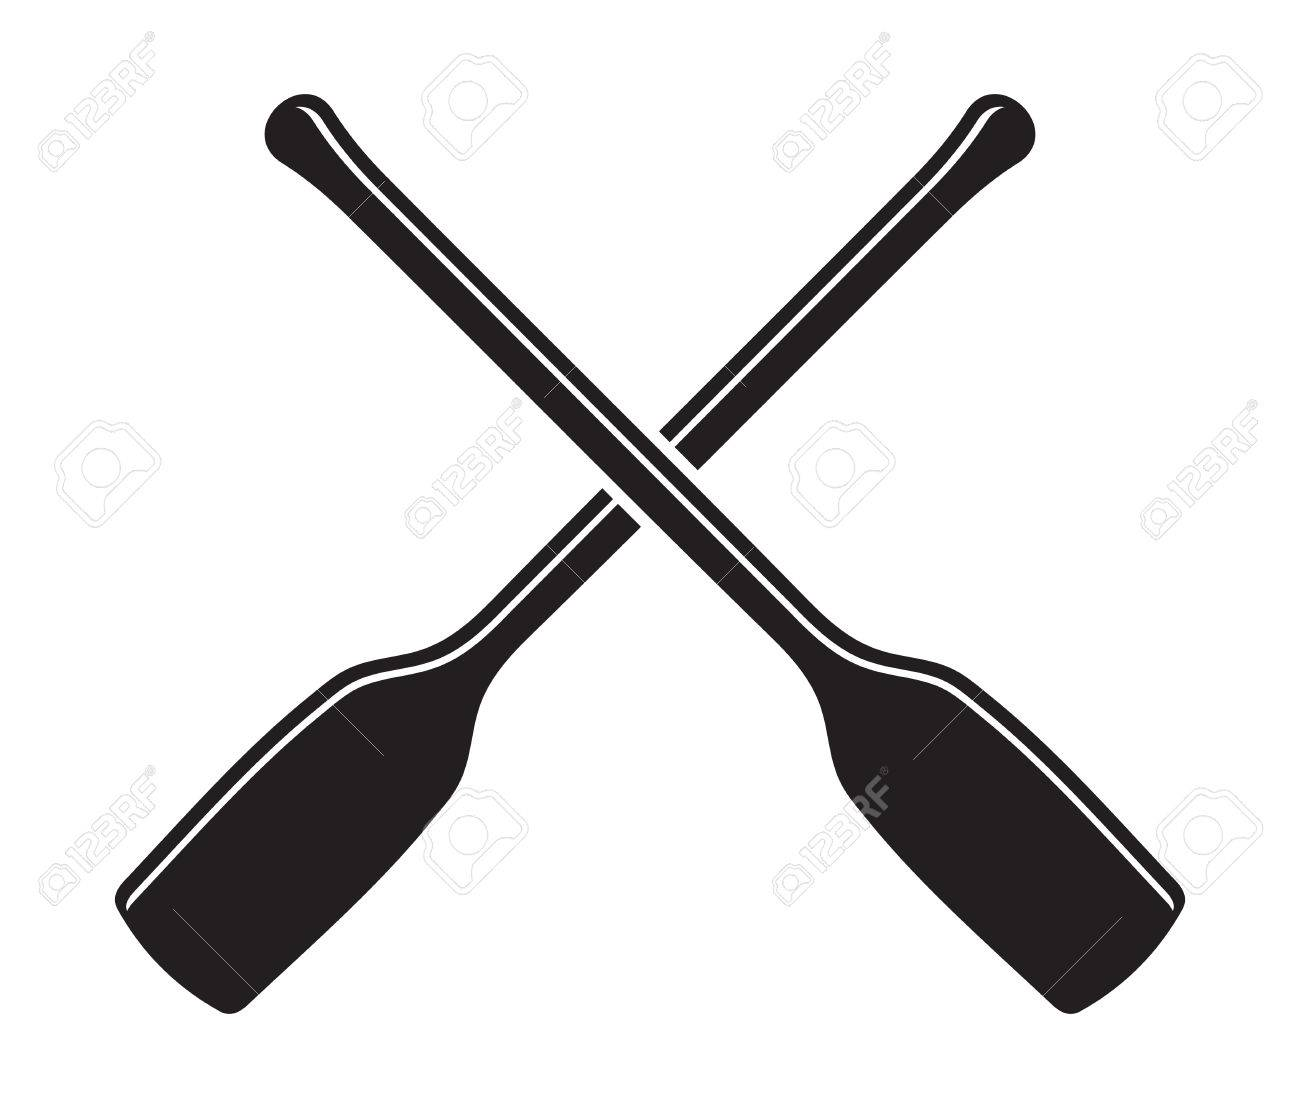 Canoe Kayak Paddle Vector Icon Illustration